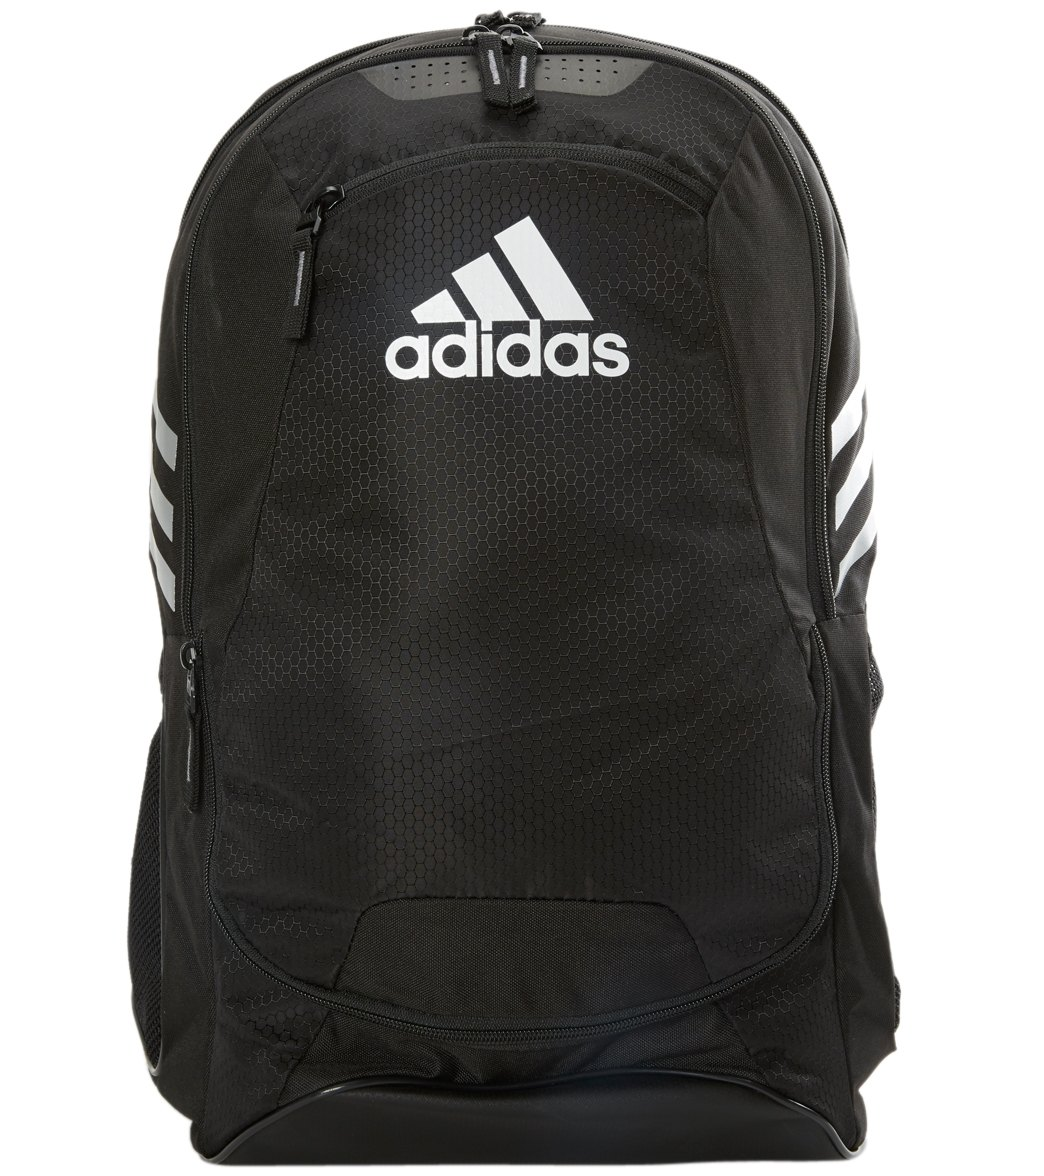 e8e3af0fc3 Adidas Stadium II Backpack C3000X at SwimOutlet.com - Free Shipping